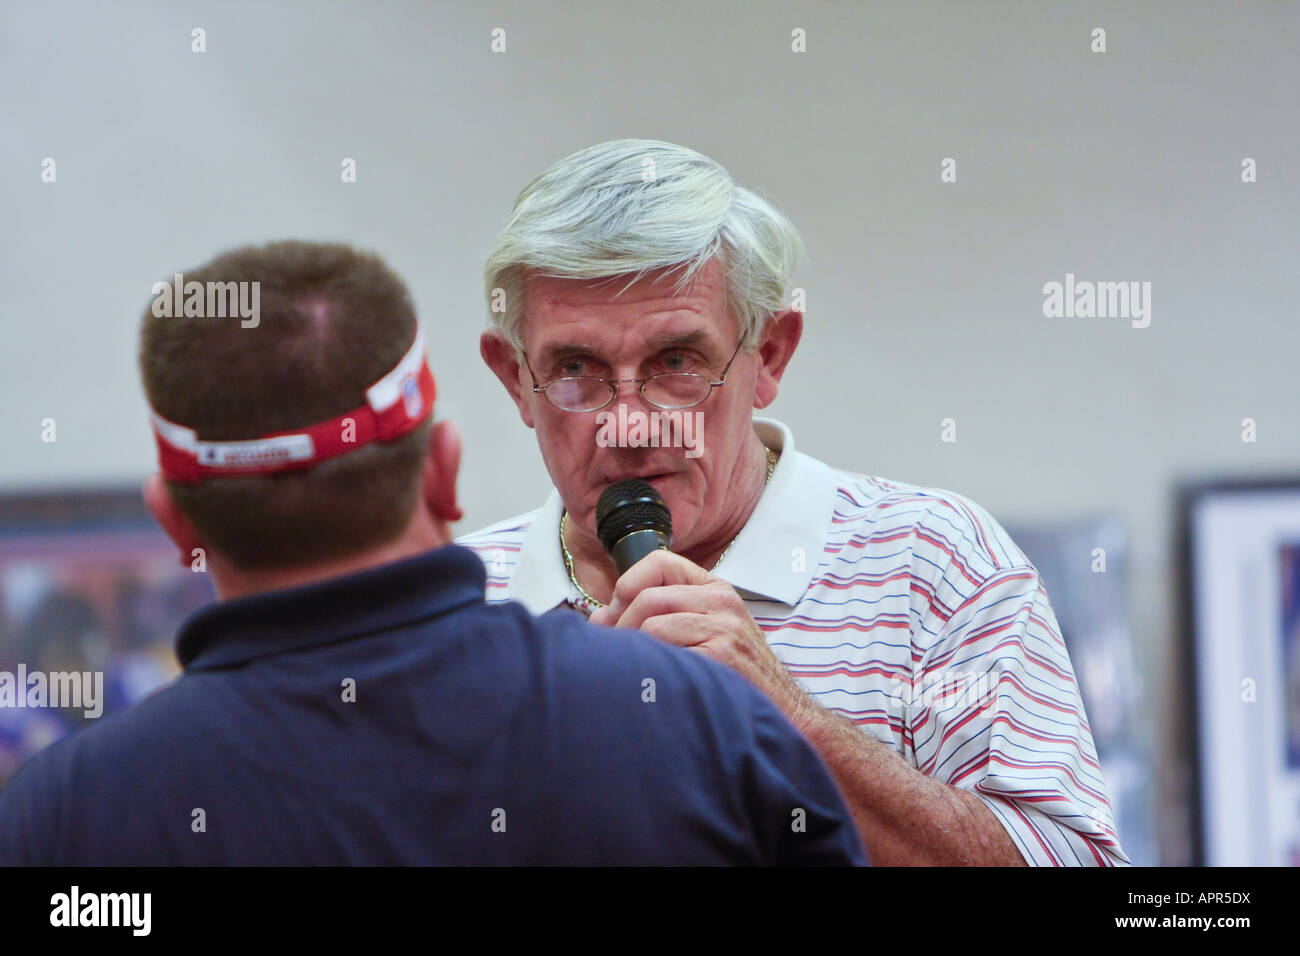 Man with a Microphone Making an Announcement - Stock Image